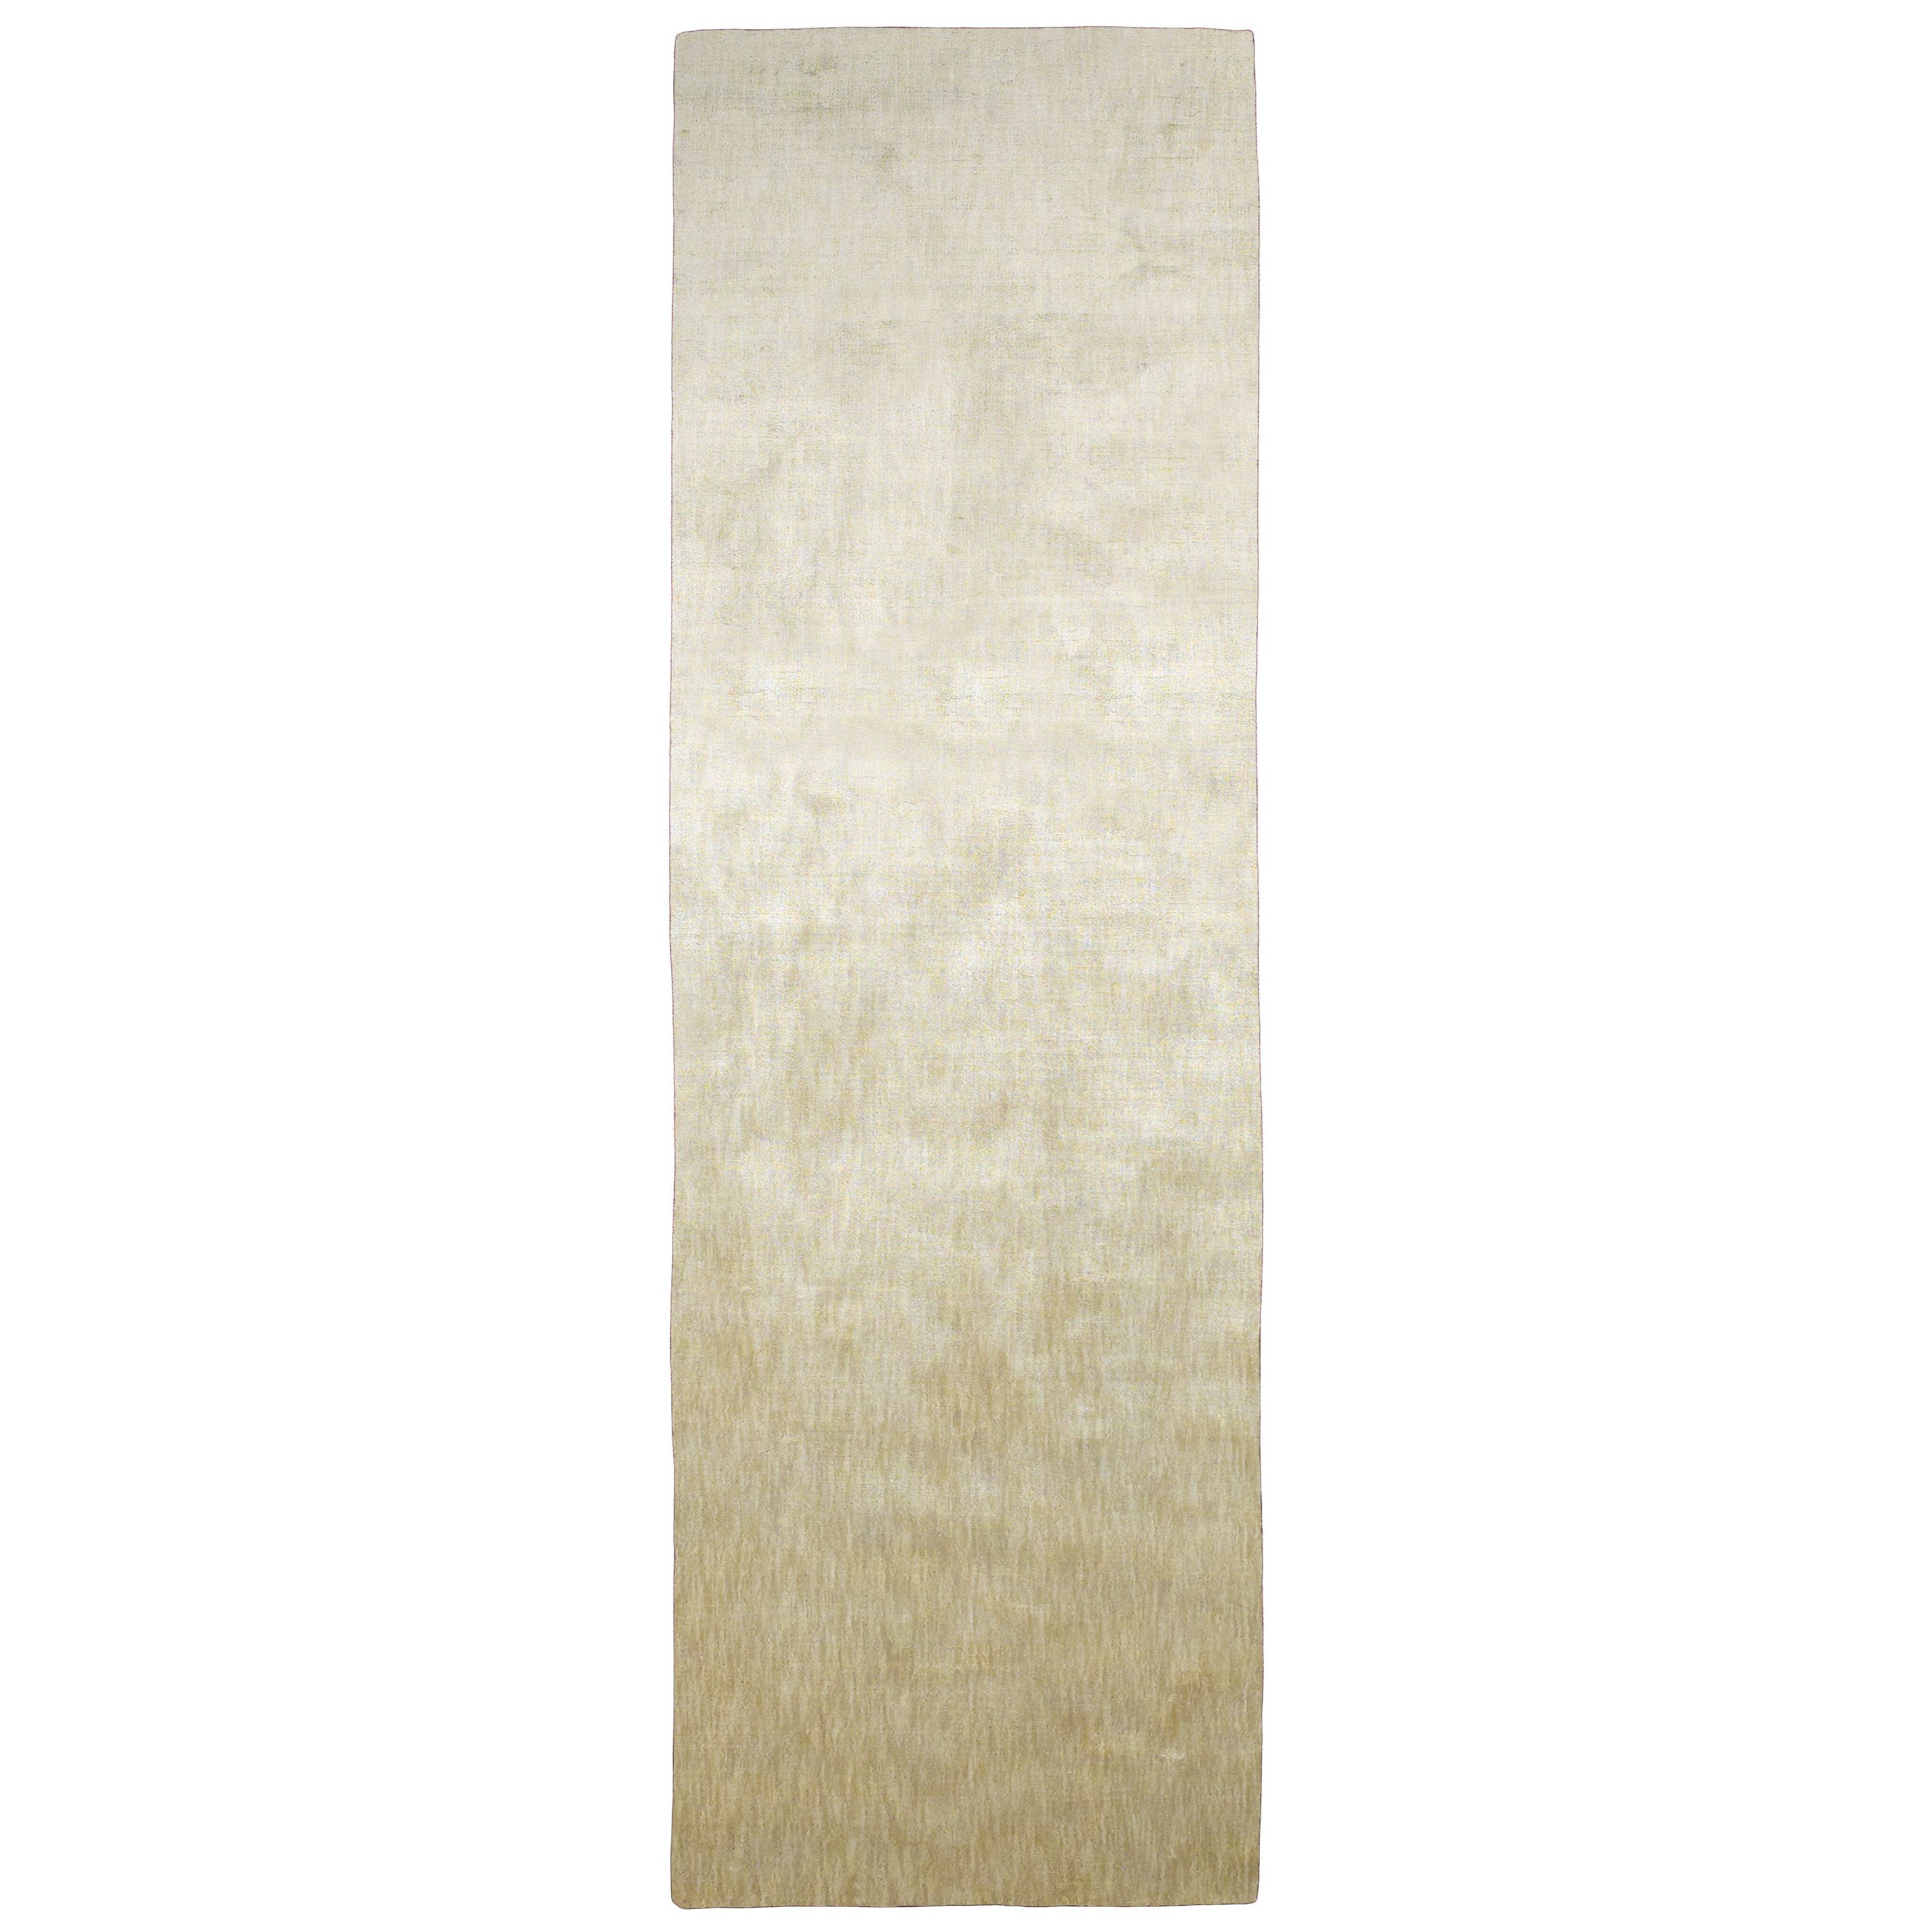 "Marlowe Beige 2'-6"" x 8' Runner Rug by Feizy Rugs at Jacksonville Furniture Mart"